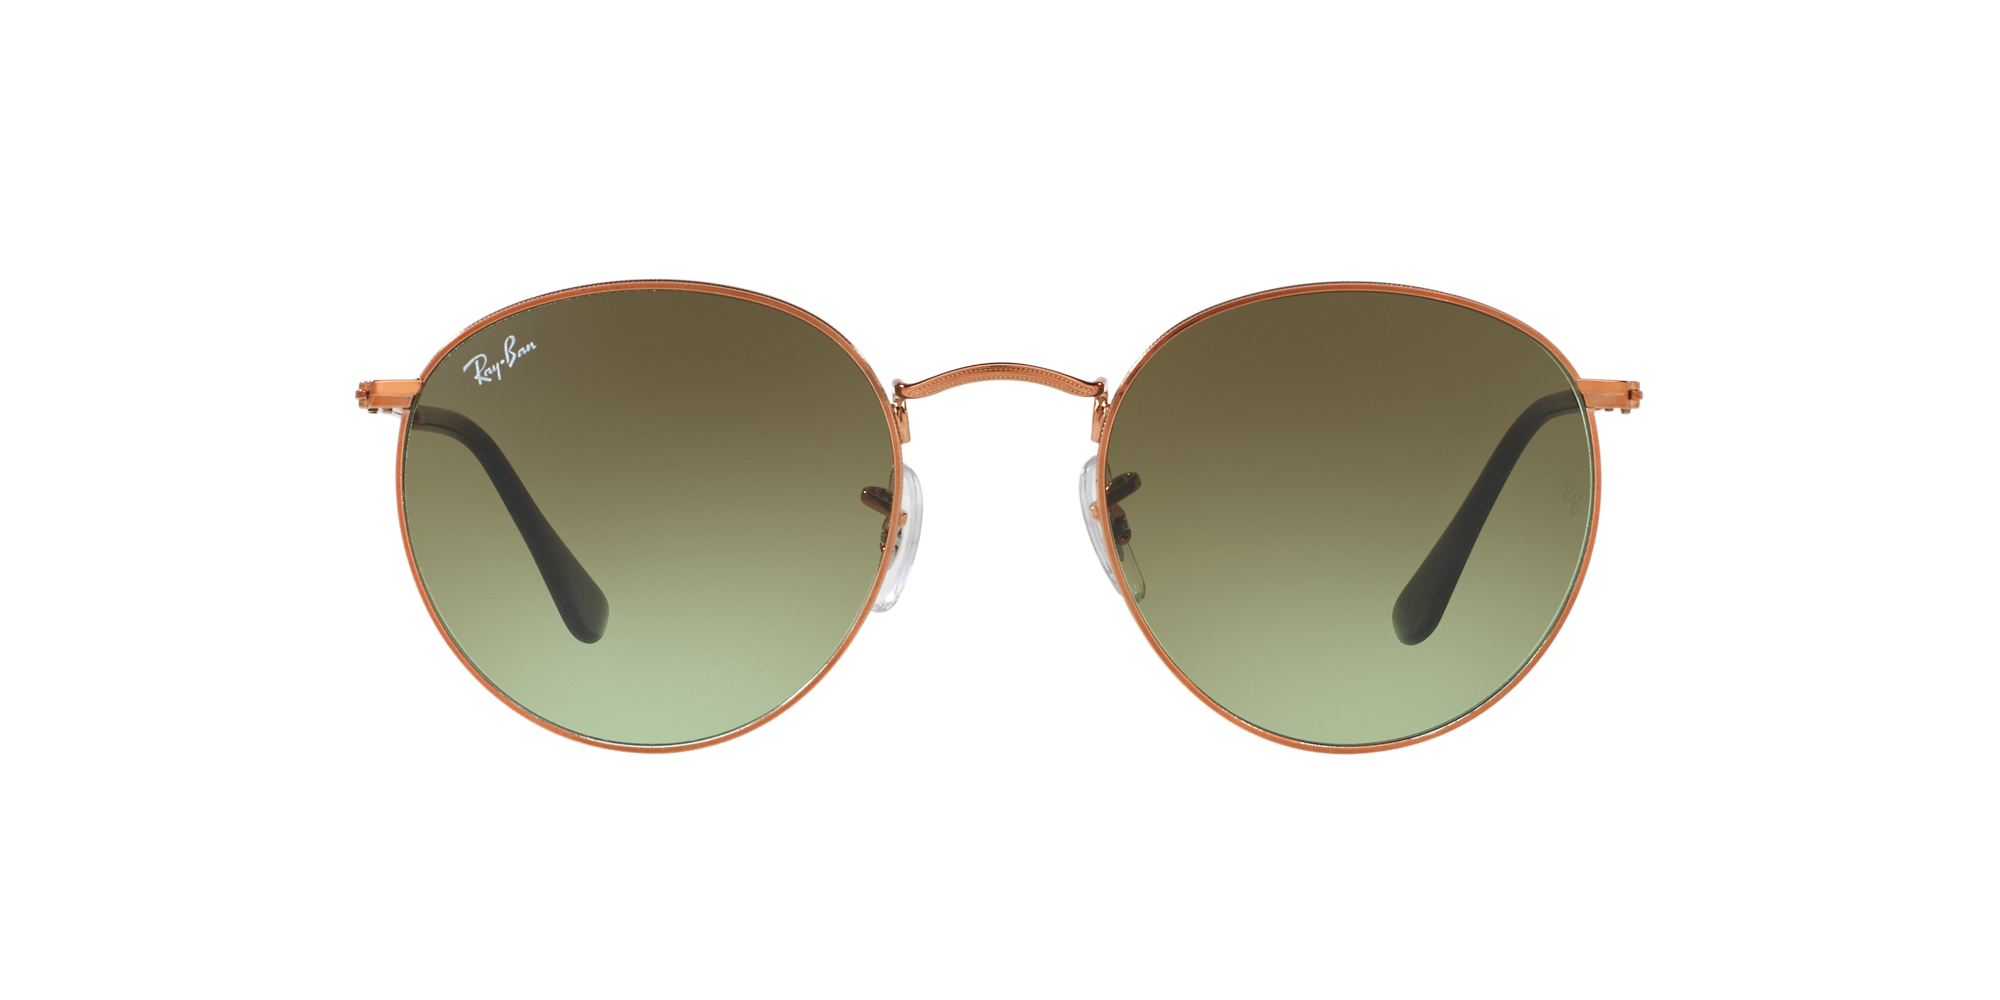 RAY-BAN ROUND METAL RB 3447 9002A6-360